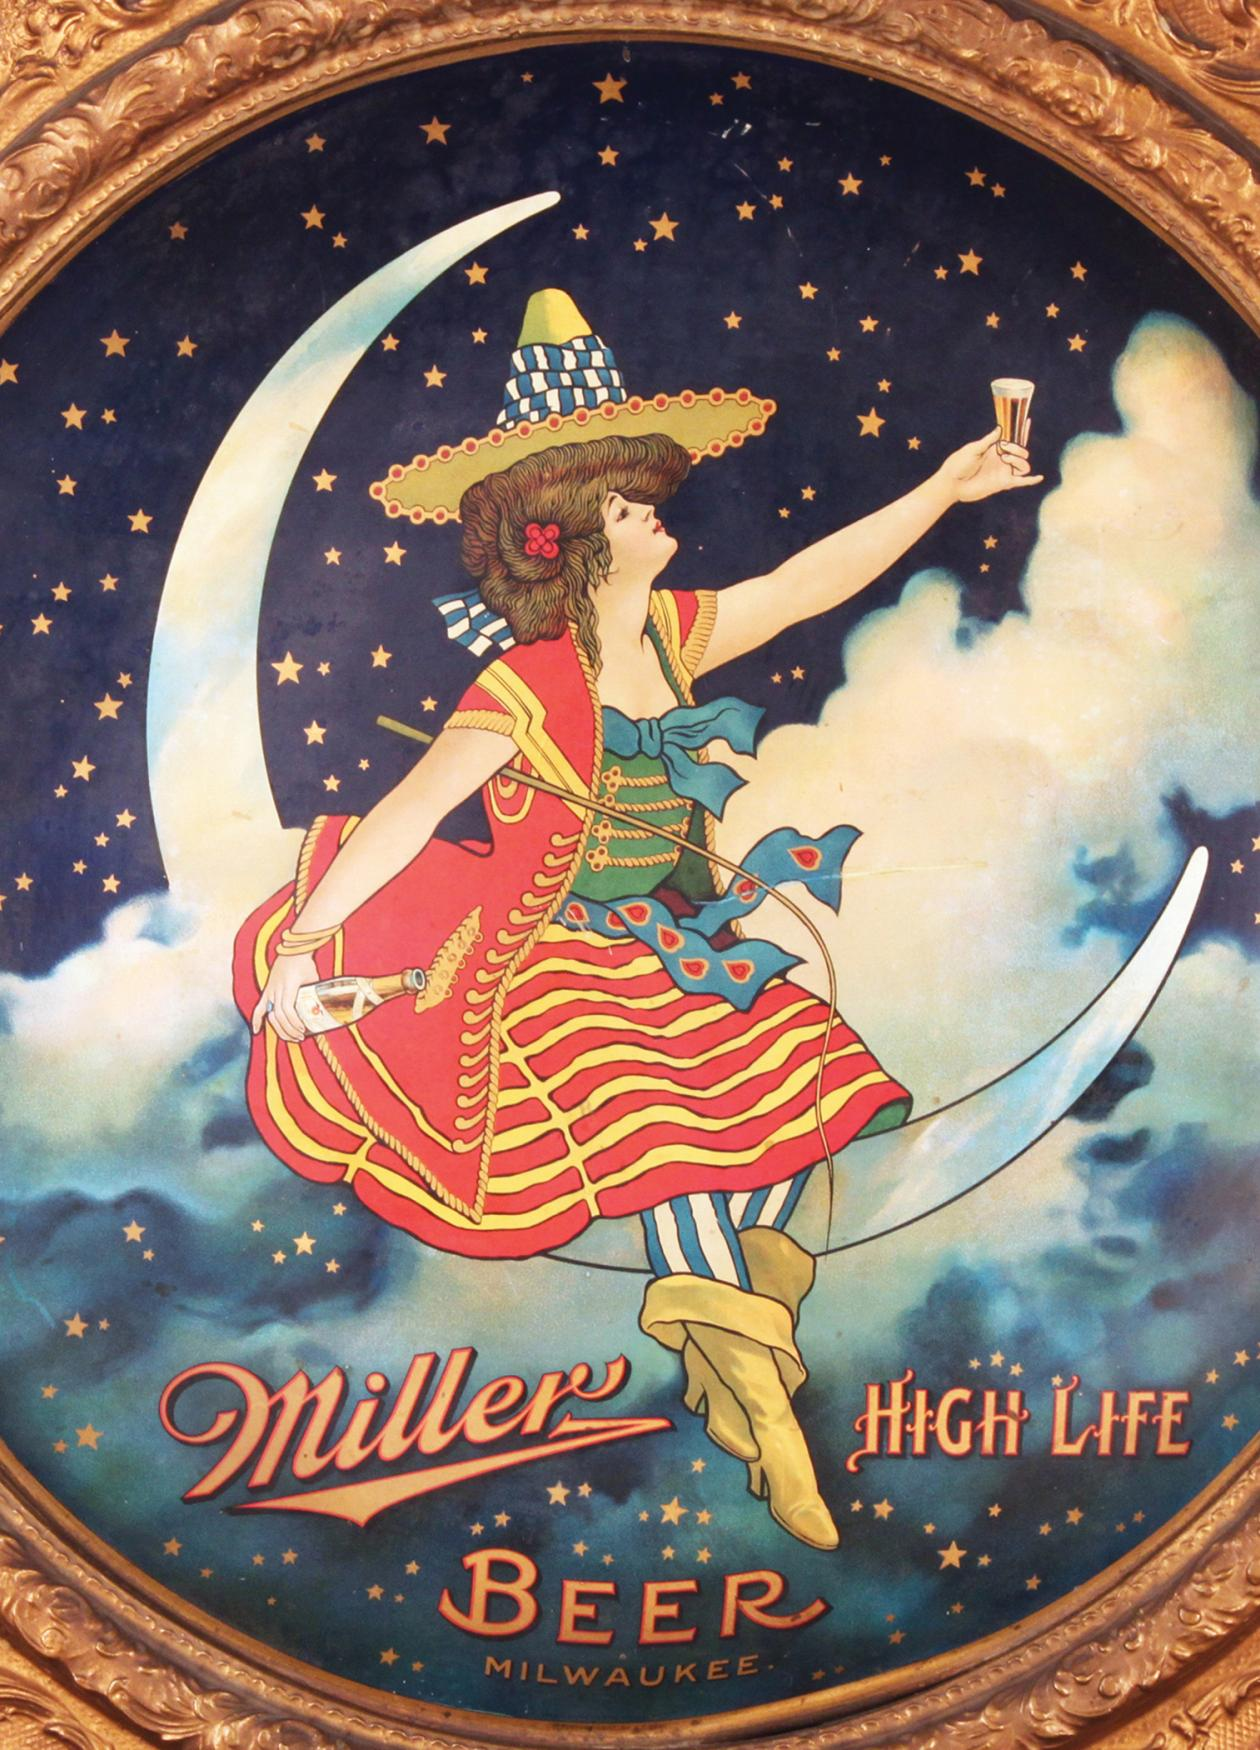 1907 Miller High Life lithograph, depicting a girl in a striped dress, sitting on a crescent moon, holding a glass of beer